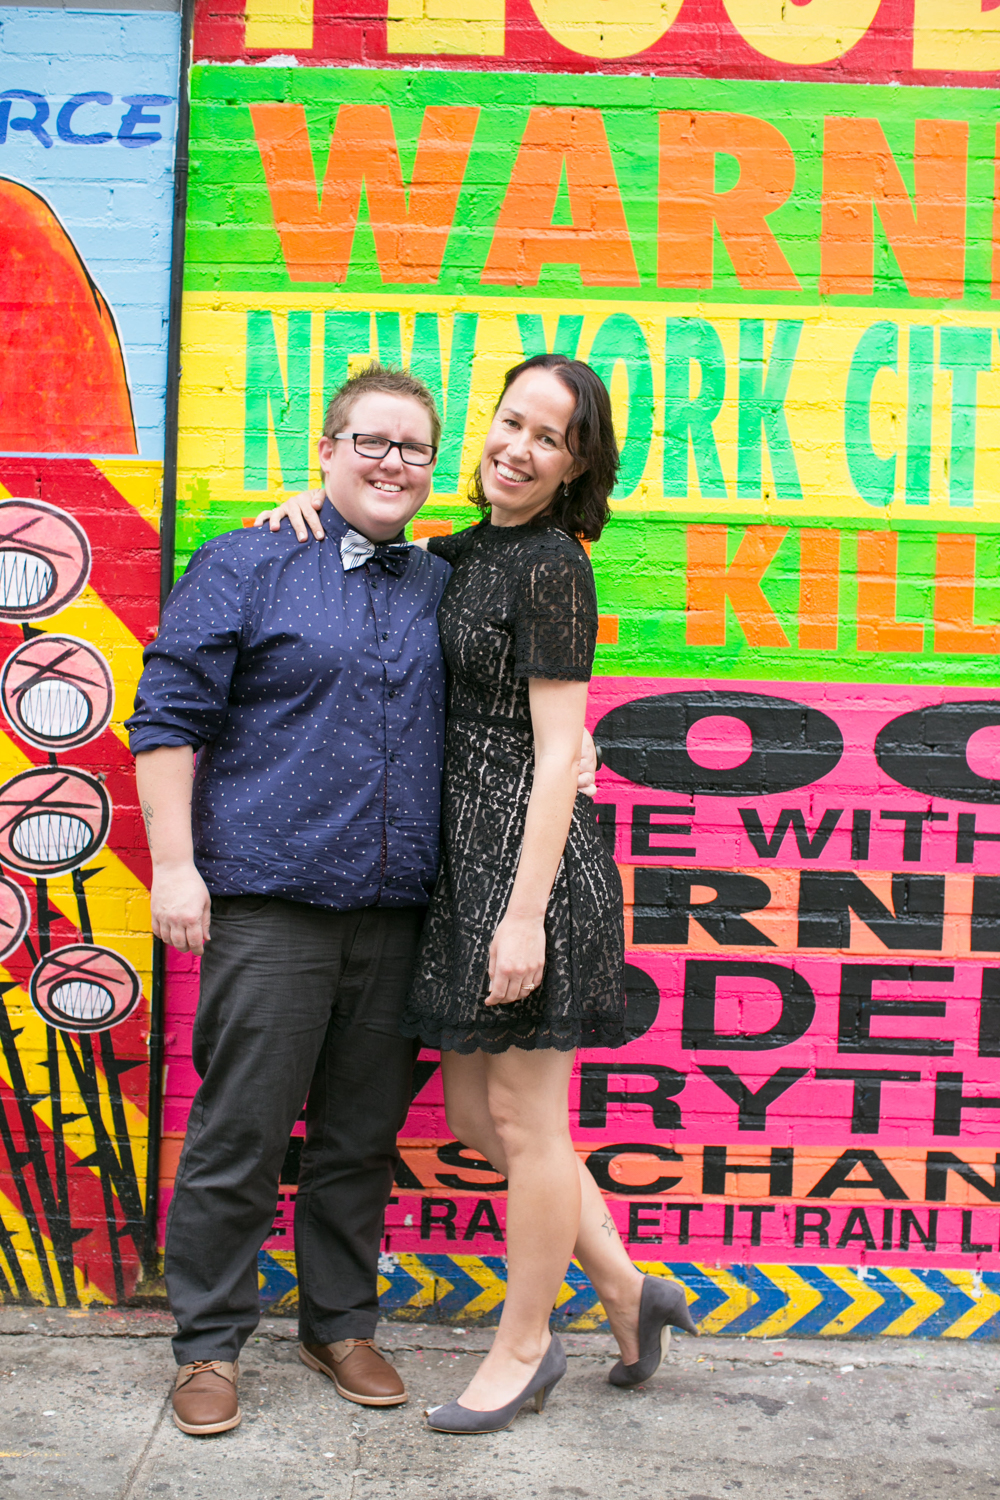 Couple celebrates anniversary together in NYC